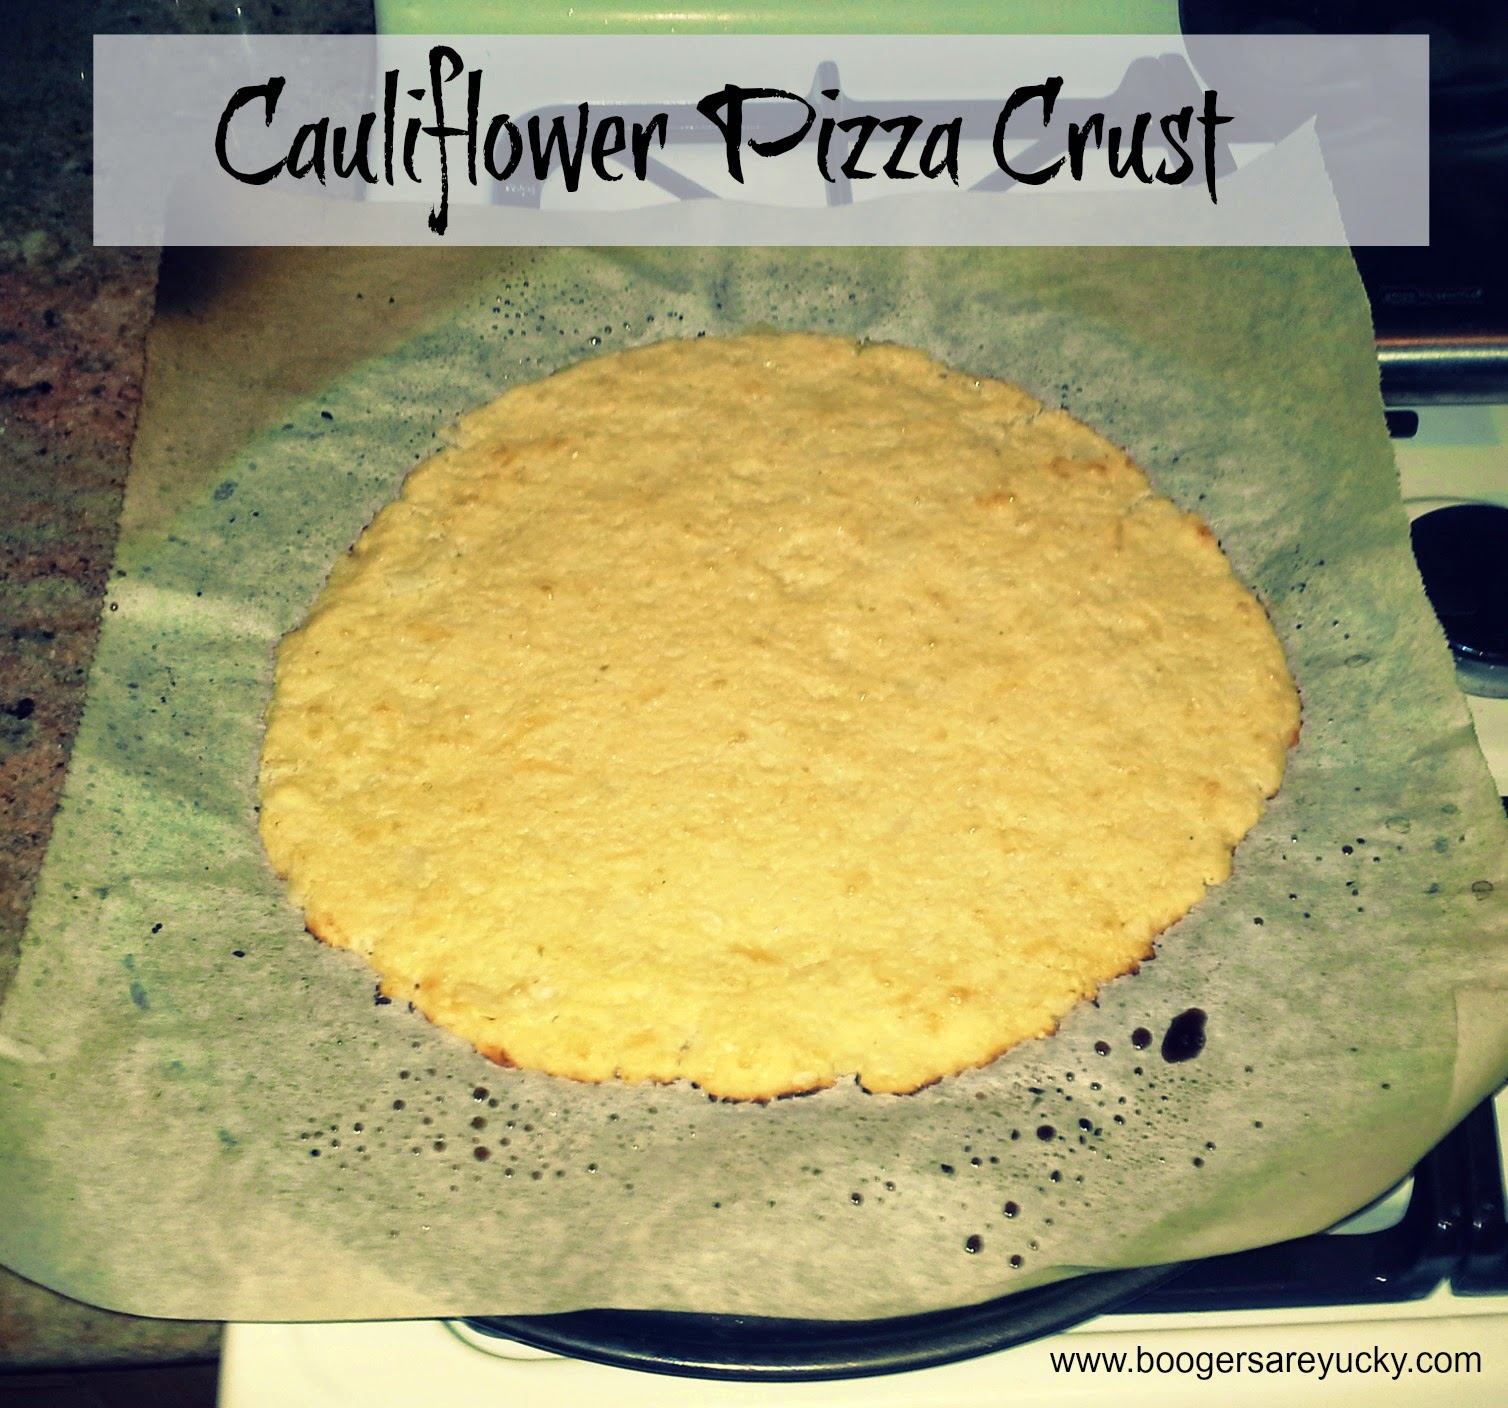 Cauliflower Pizza Crust - Toddler Approved.  Lizzie Lau Boogers Are Yucky